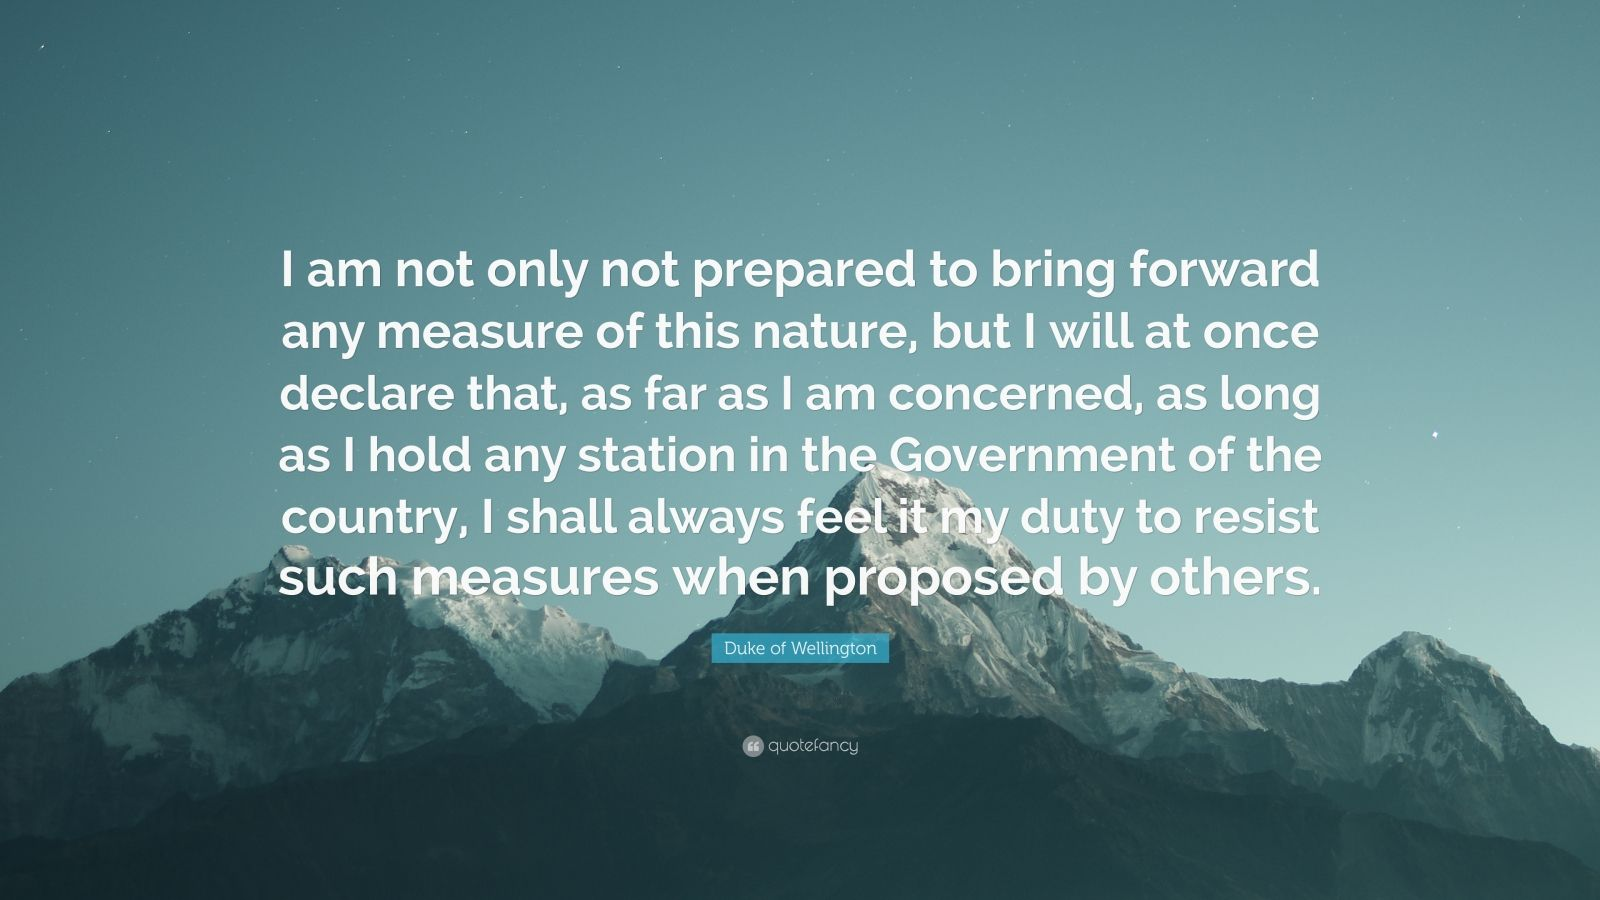 """Duke of Wellington Quote: """"I am not only not prepared to bring forward any measure of this nature, but I will at once declare that, as far as I am concerned, as long as I hold any station in the Government of the country, I shall always feel it my duty to resist such measures when proposed by others."""""""